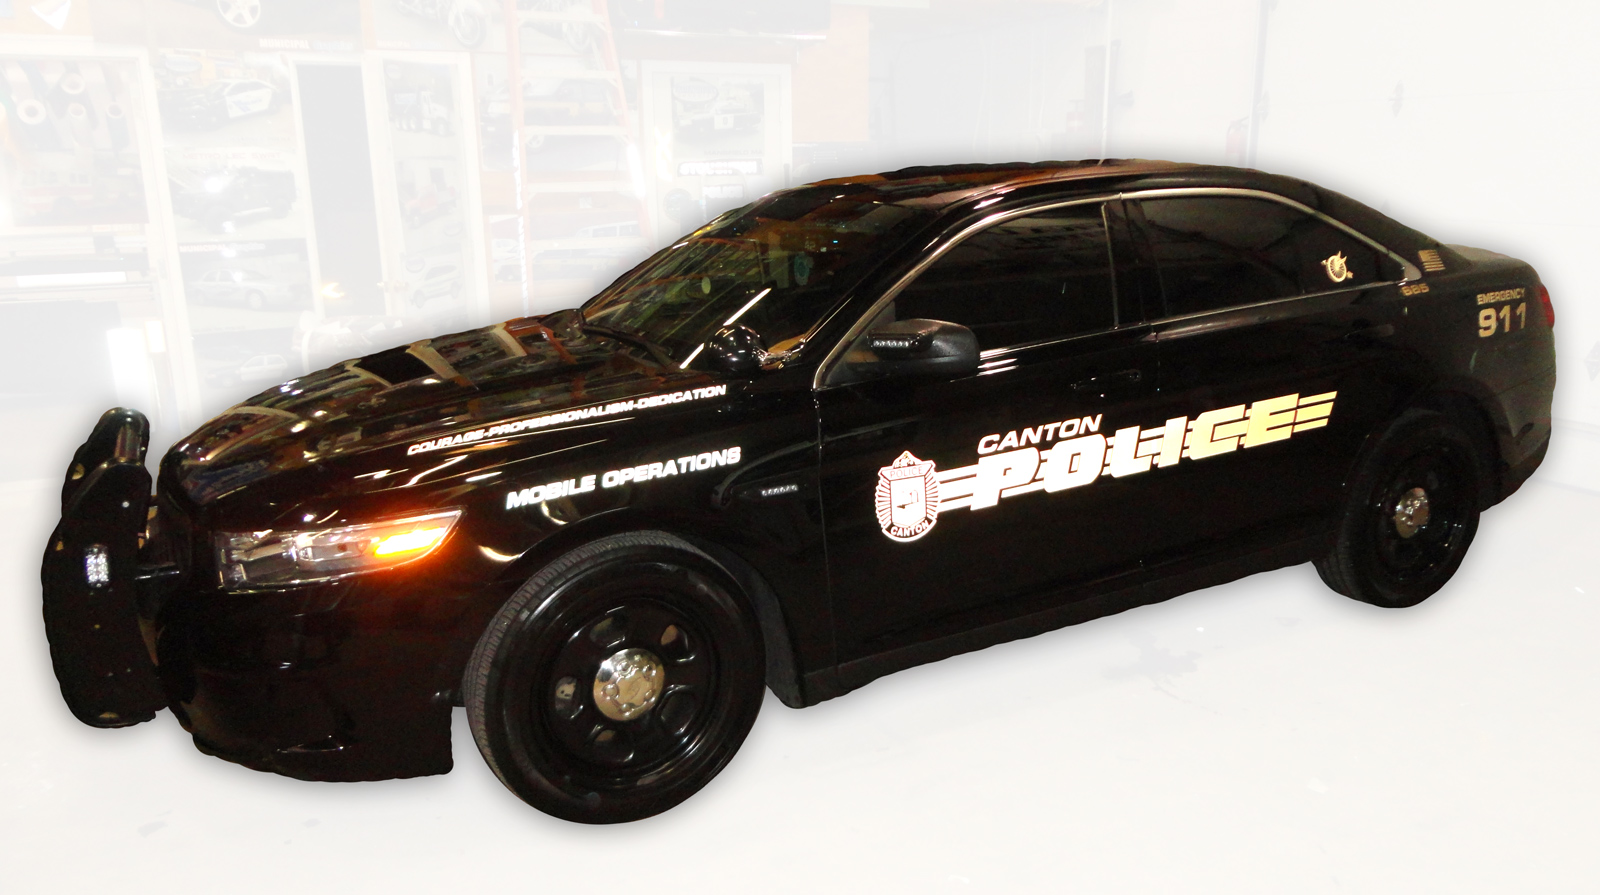 Canton PD Stealth